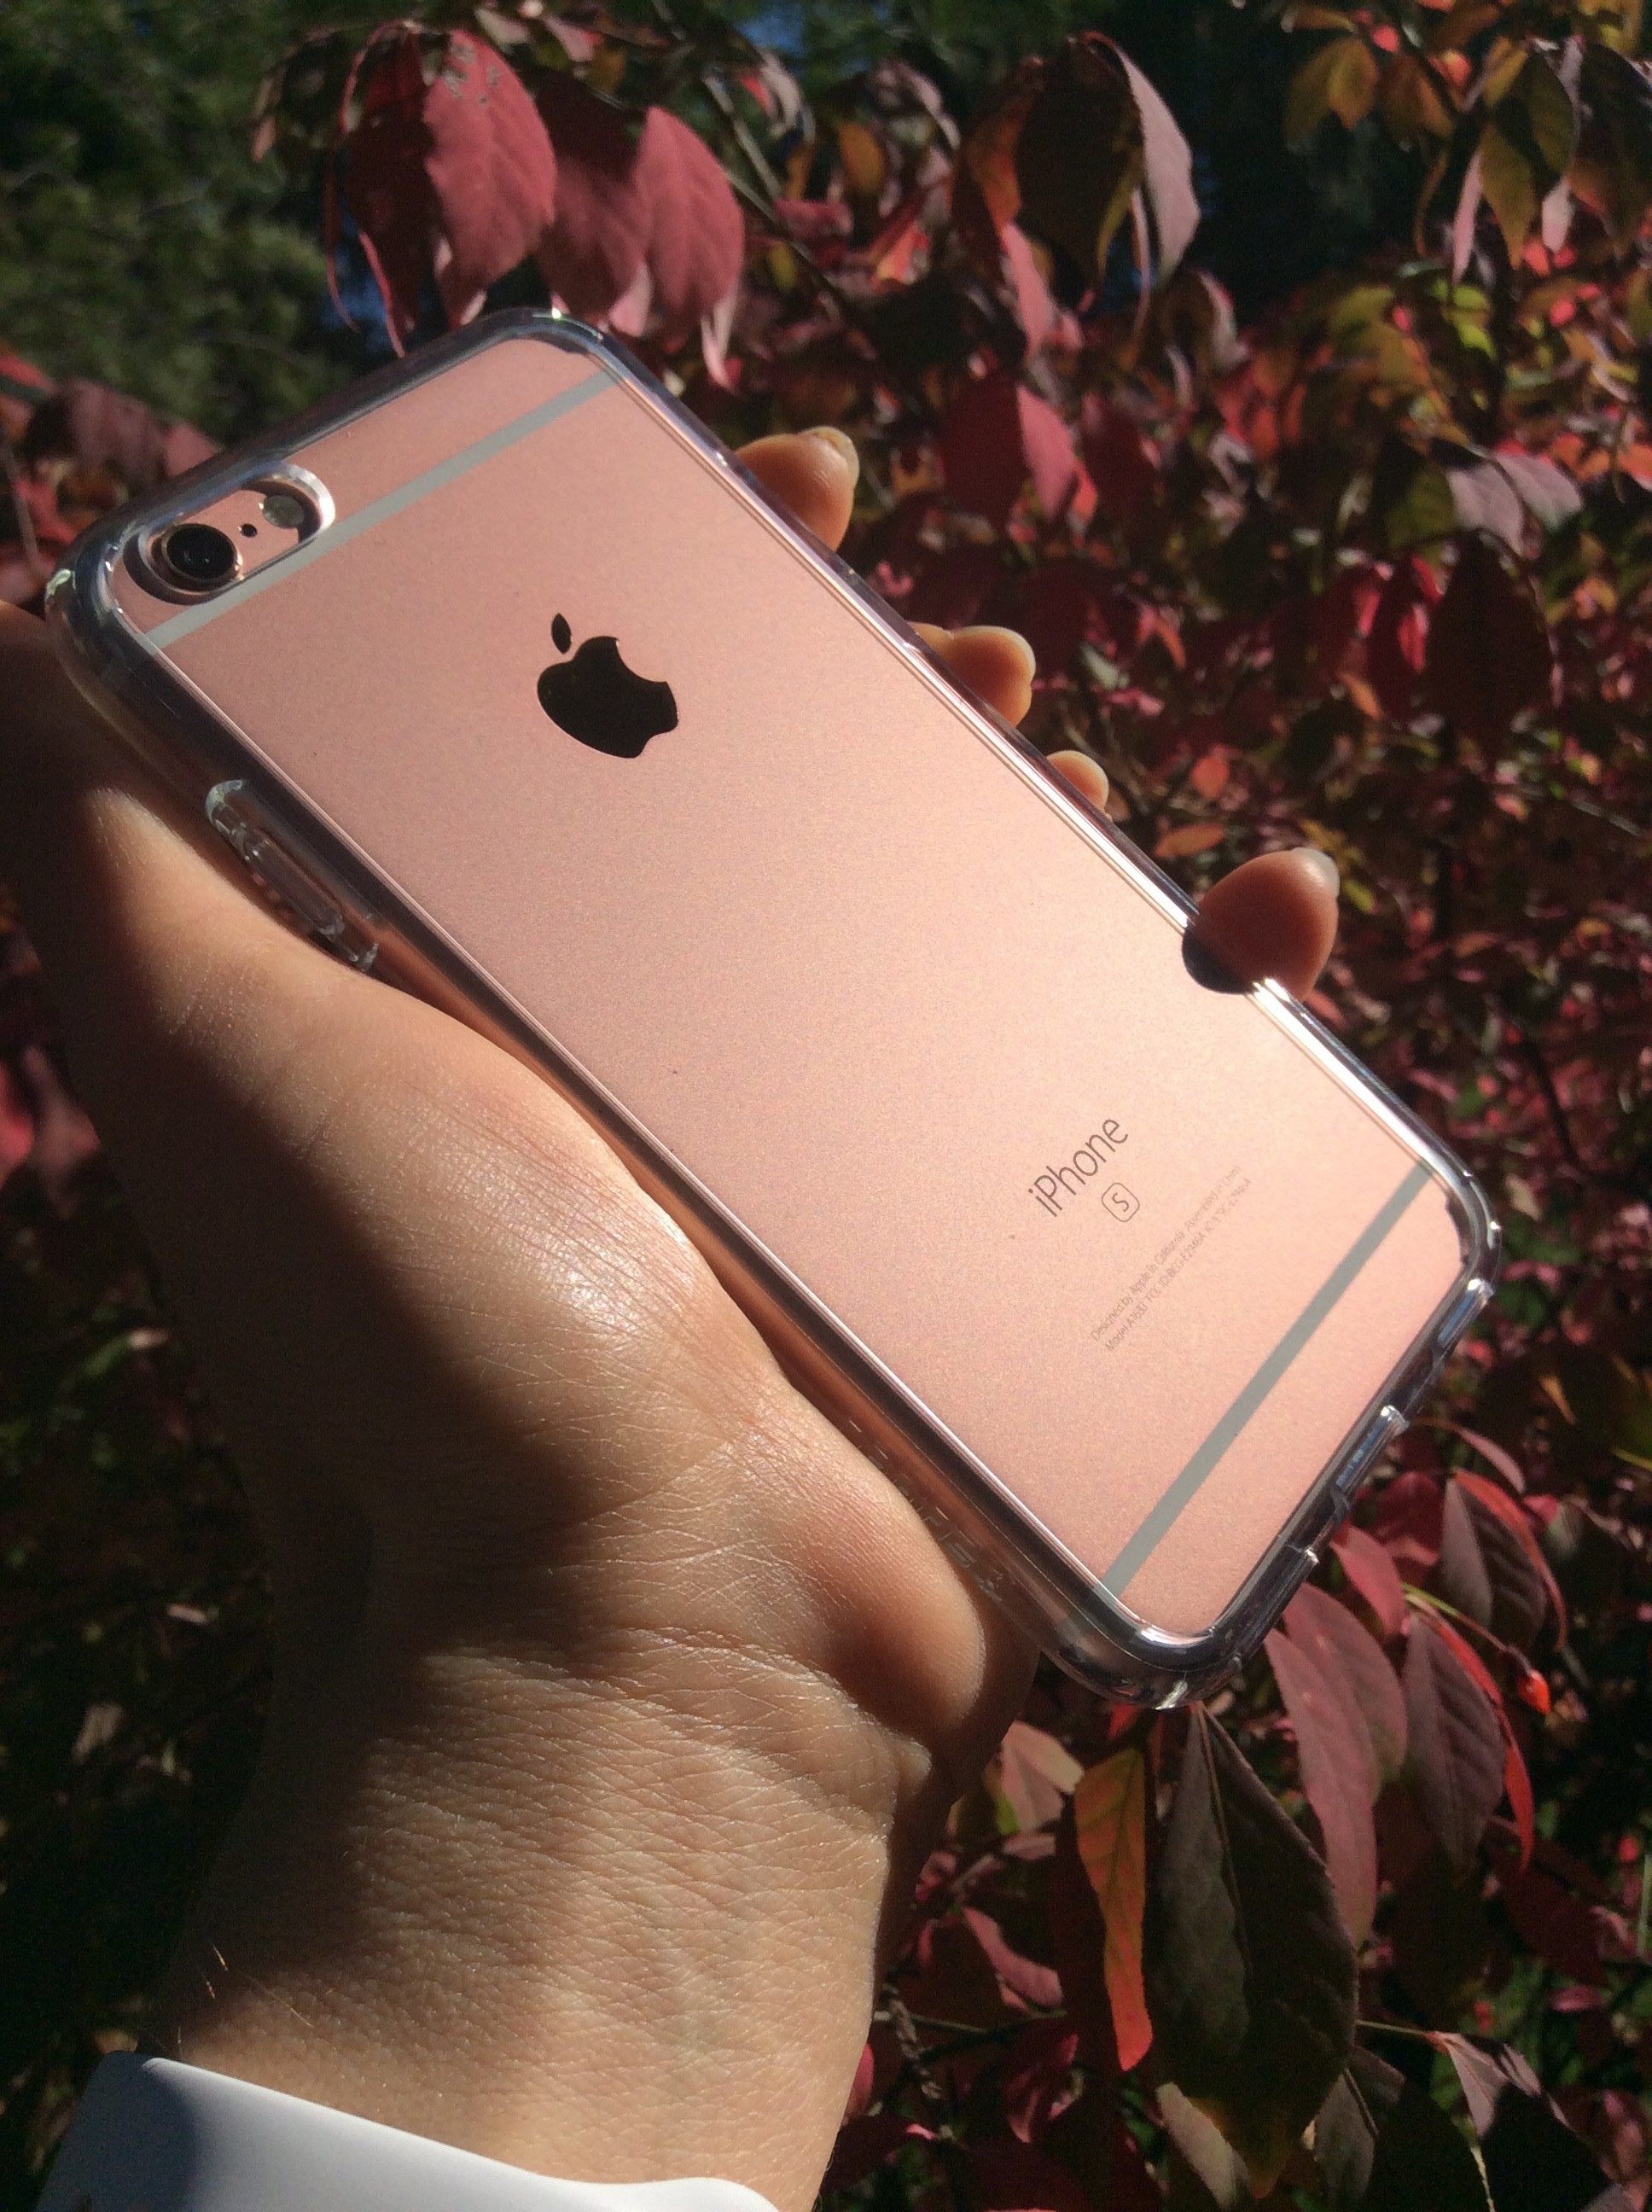 The Spigen Ultra Hybrid for iPhone 6s/6 offers clear protection